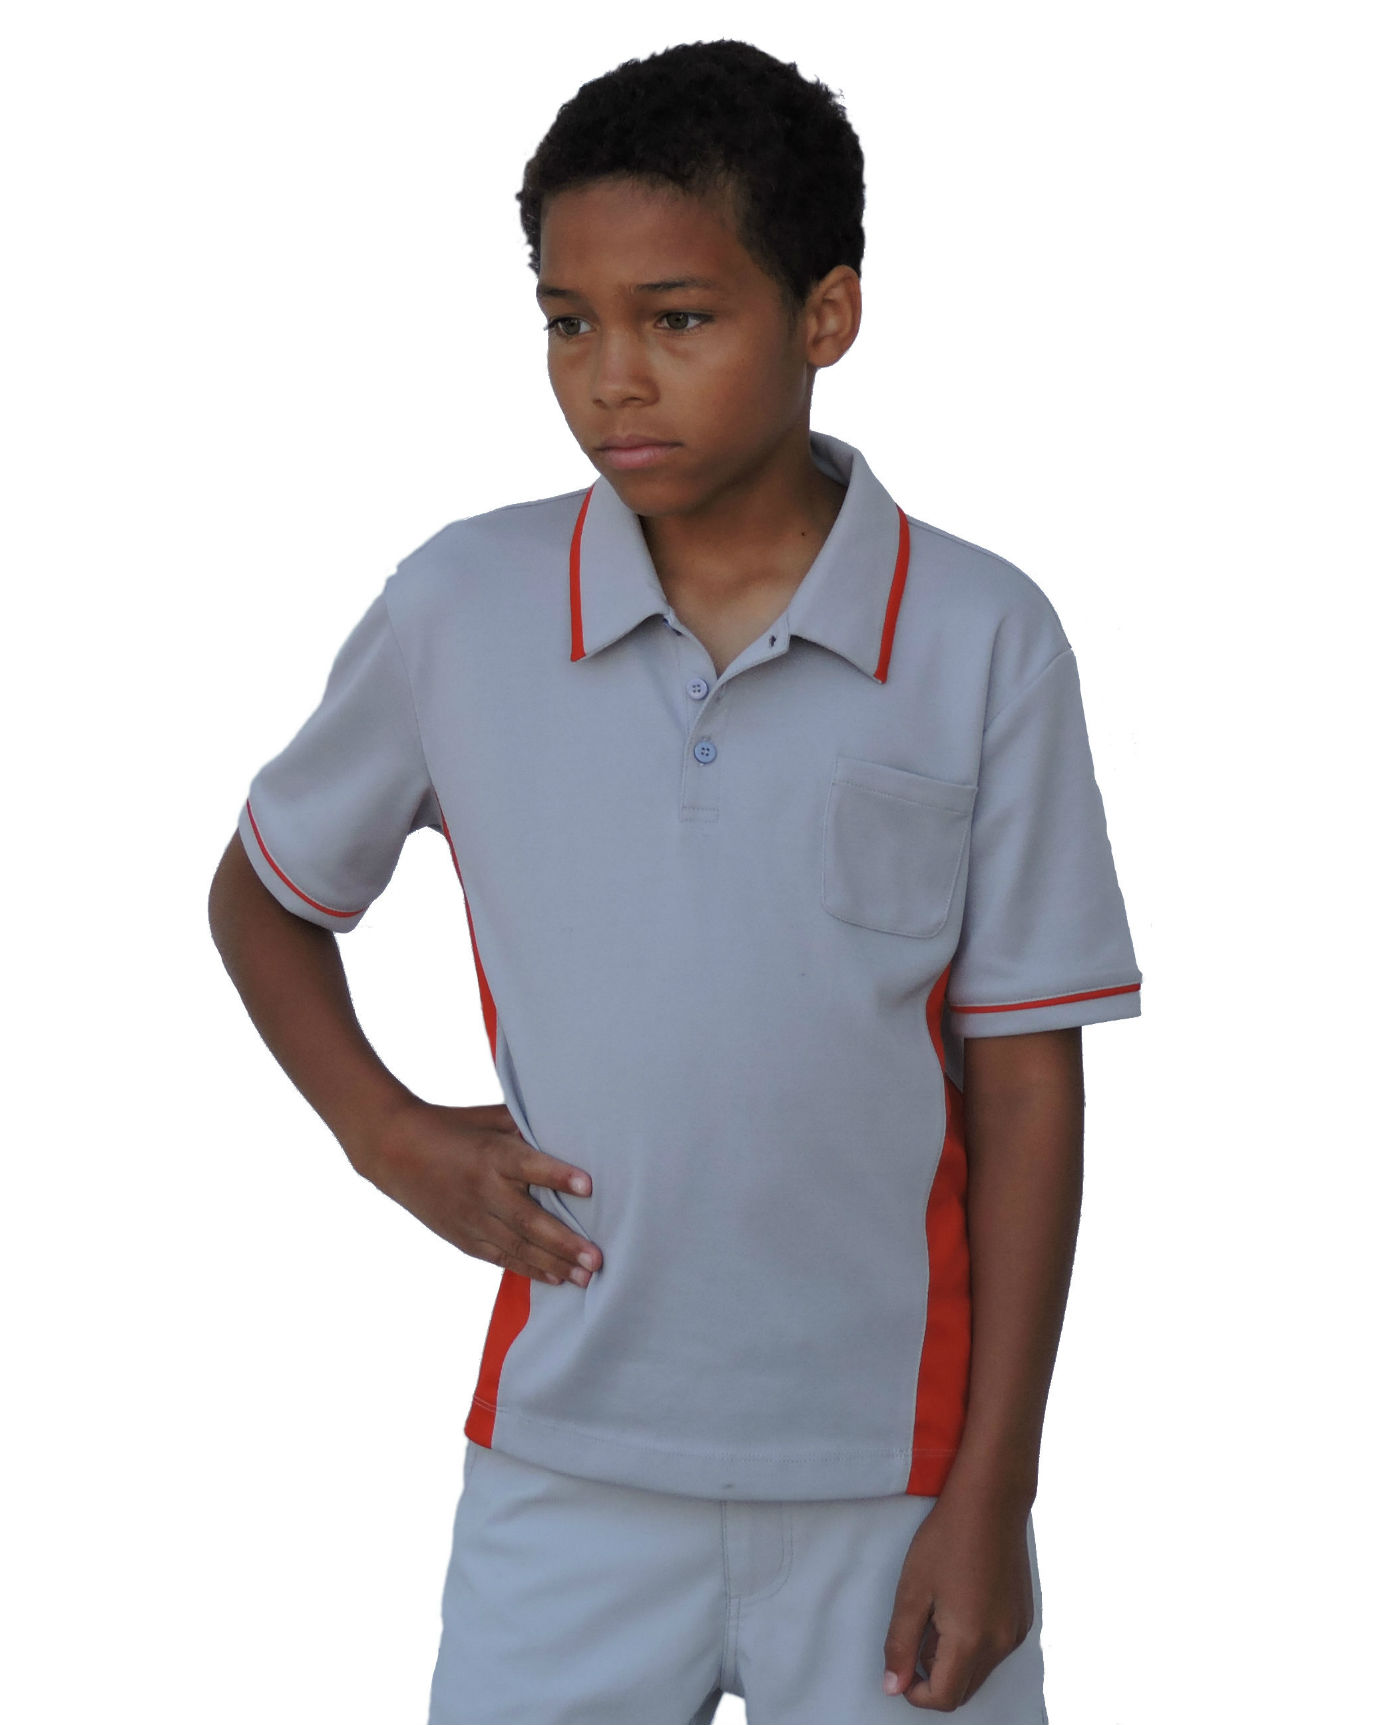 Droc - Dimond Professional Grey and Orange Polo